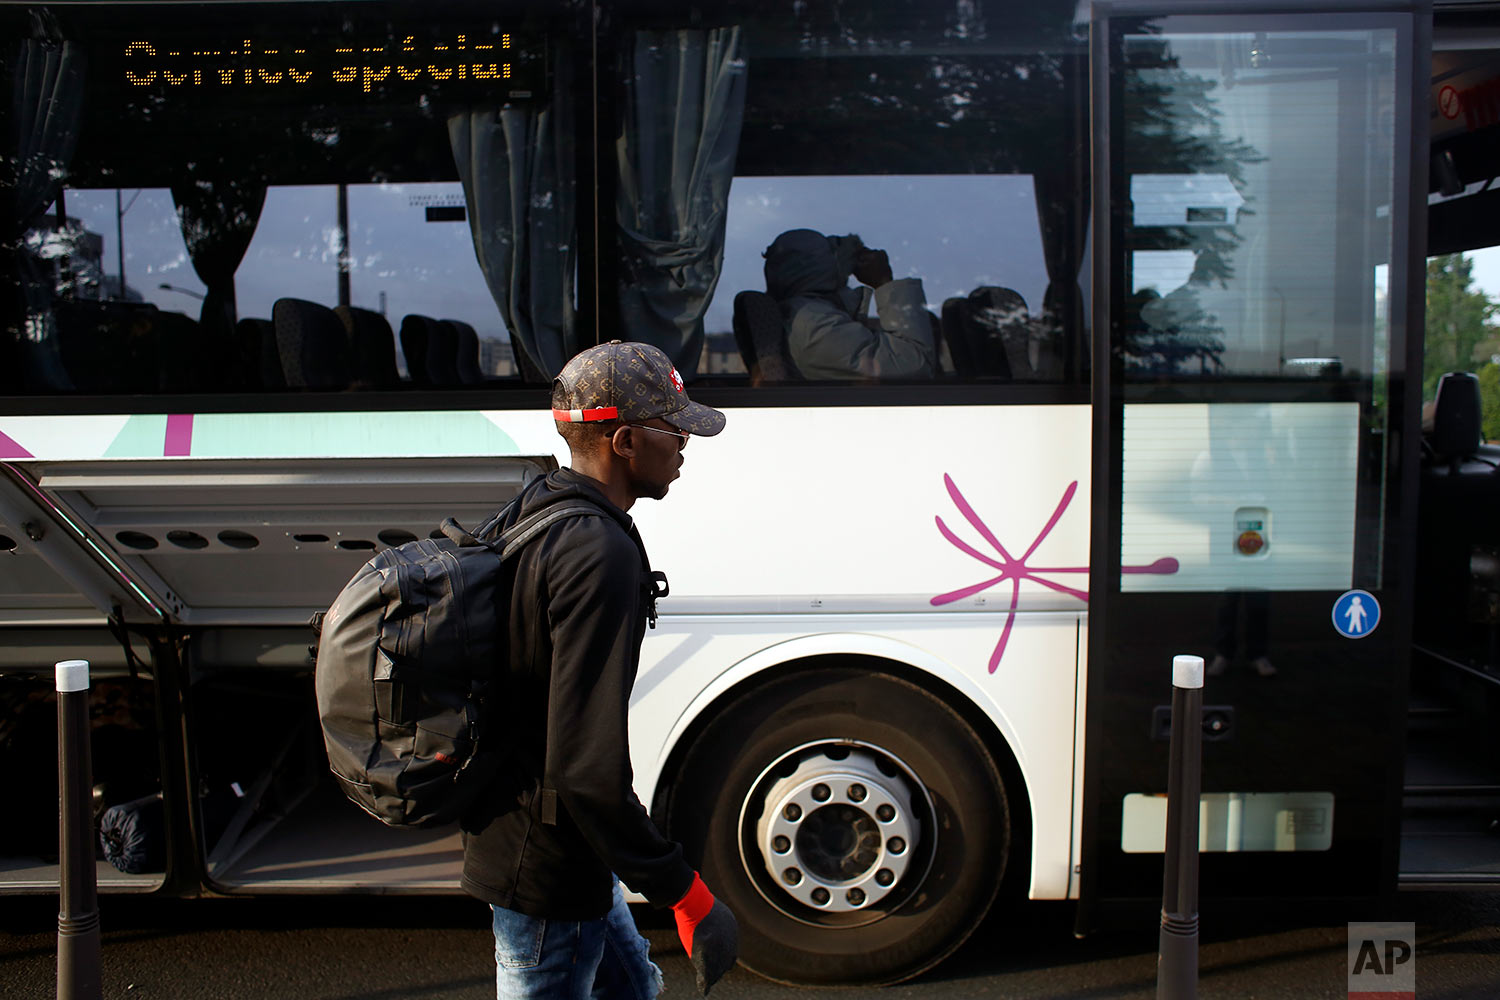 A migrant walks toward a bus that will transport him to a gymnasium during the evacuation of a makeshift camp, in Paris, Wednesday, May 30, 2018. (AP Photo/Thibault Camus)